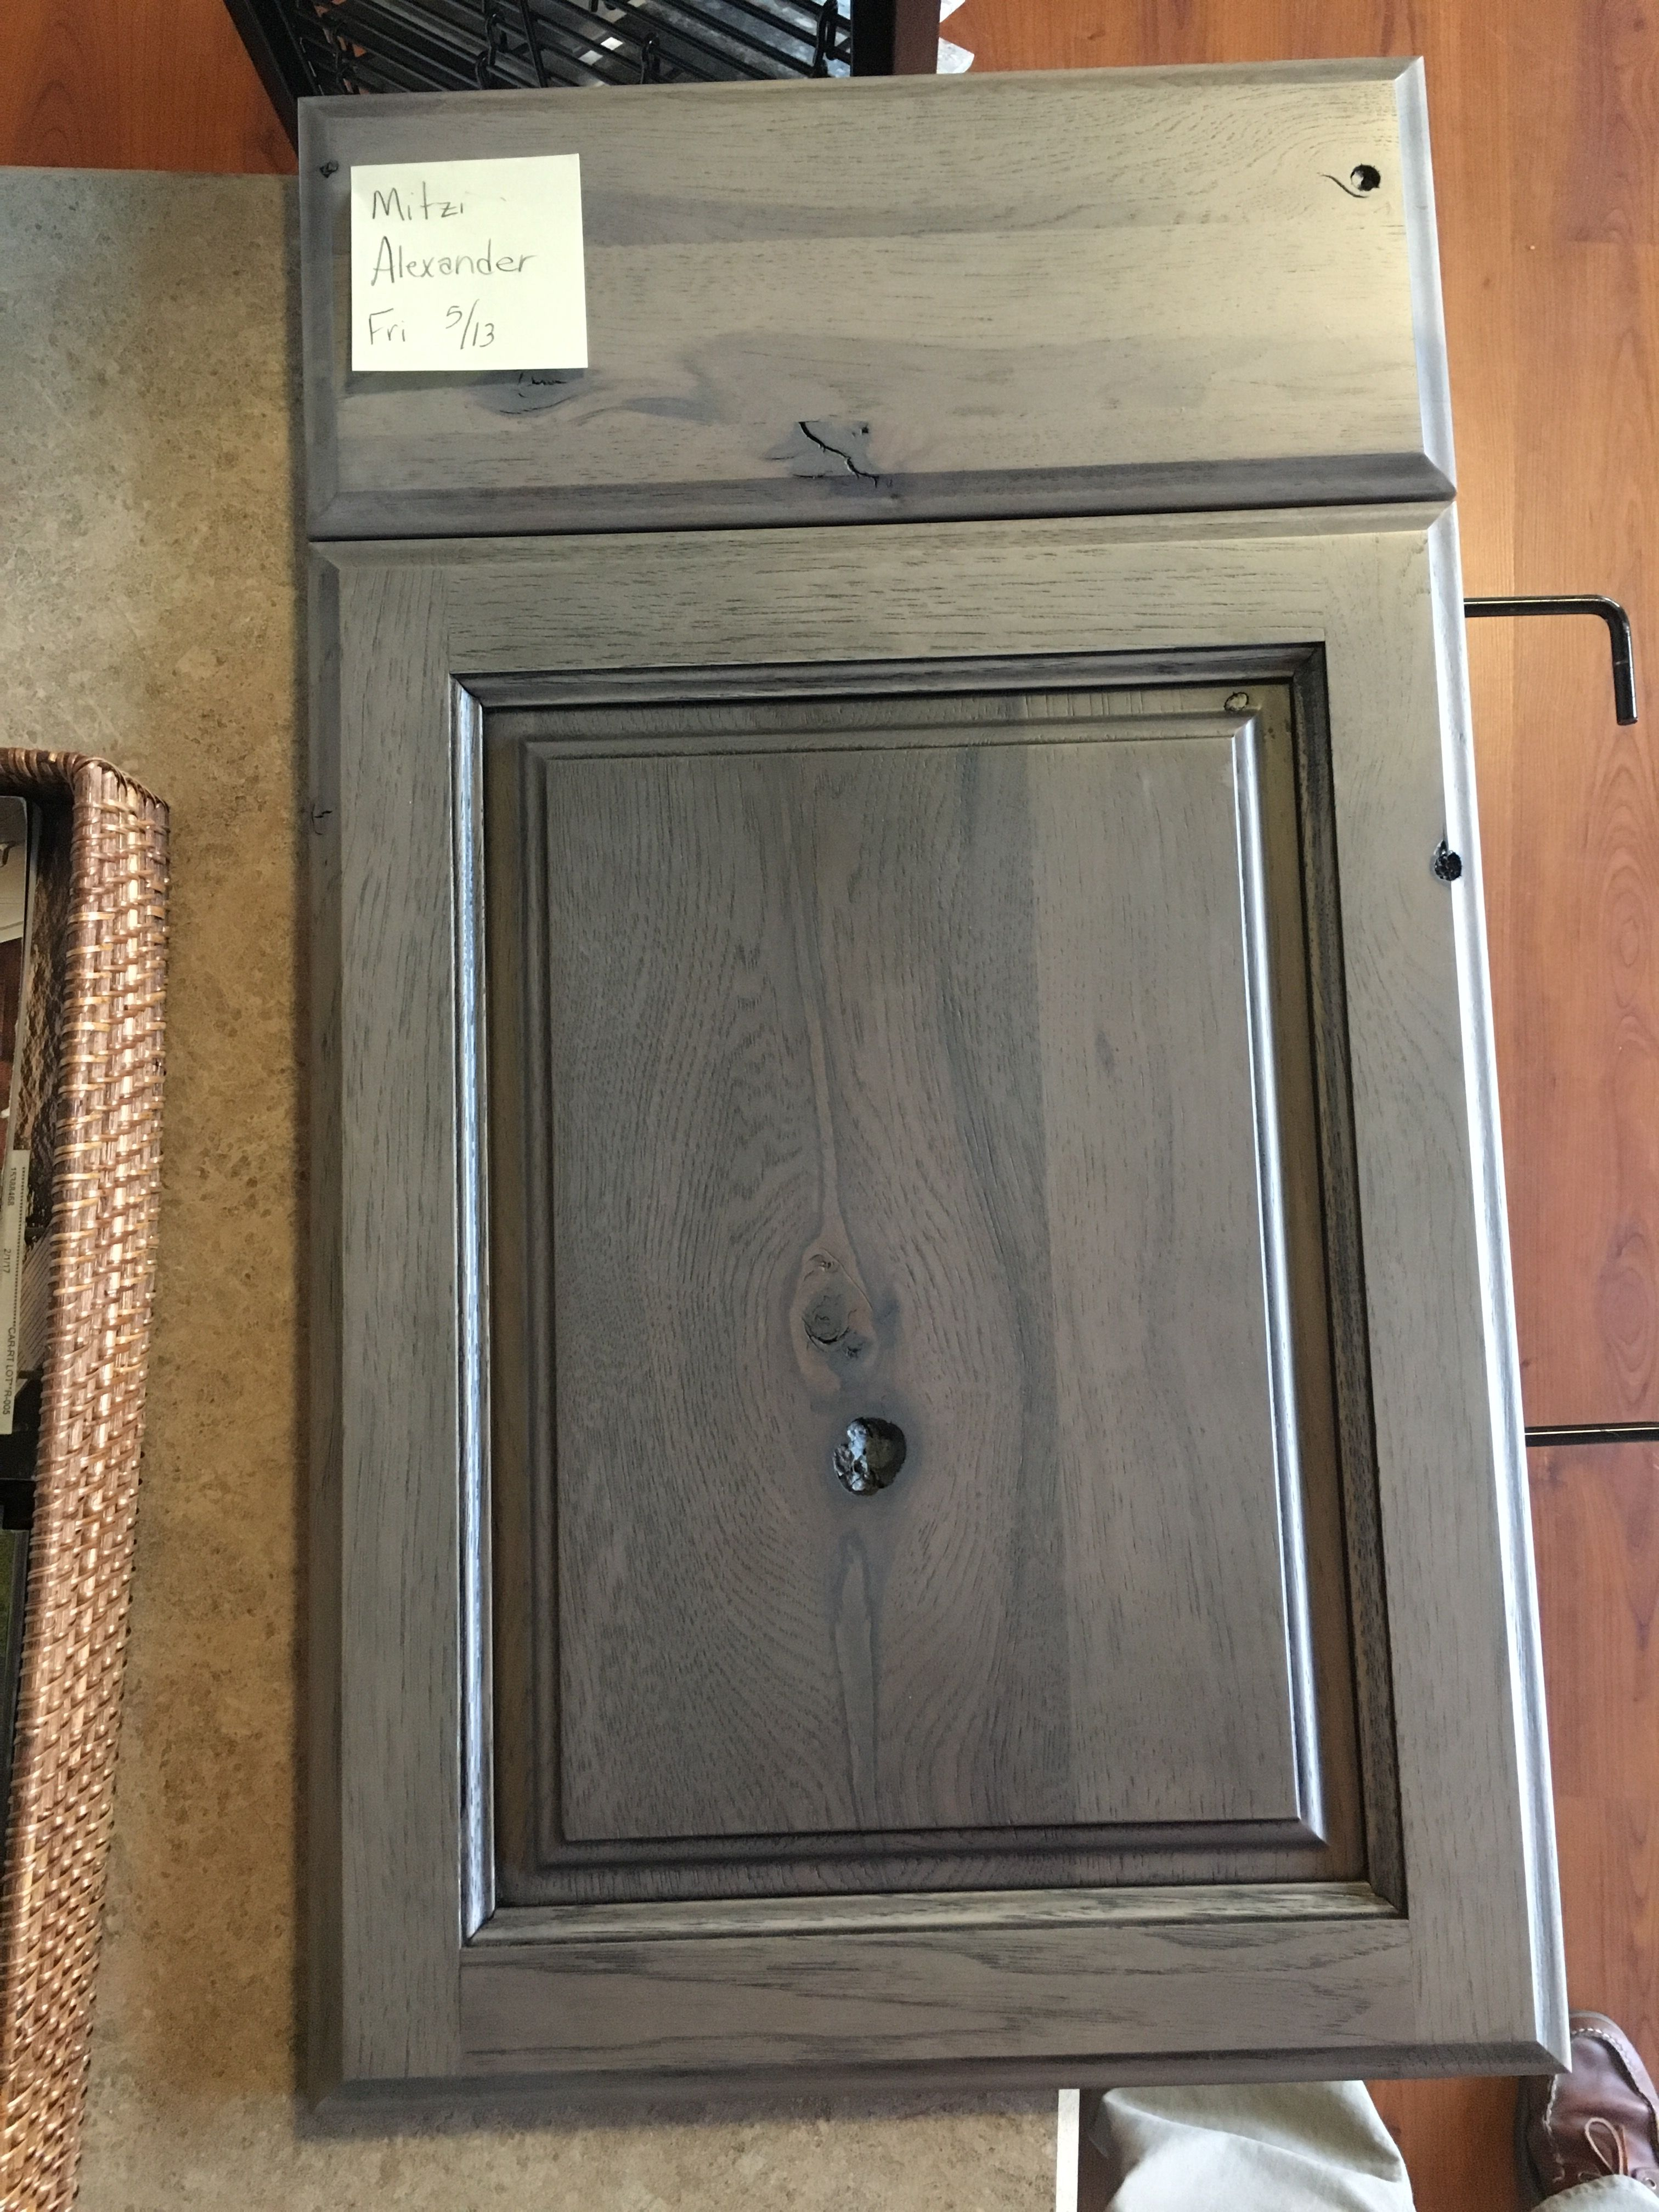 Marsh Kitchen Cabinets Starmark Rustic Hickory Accord Panel Driftwood Finish